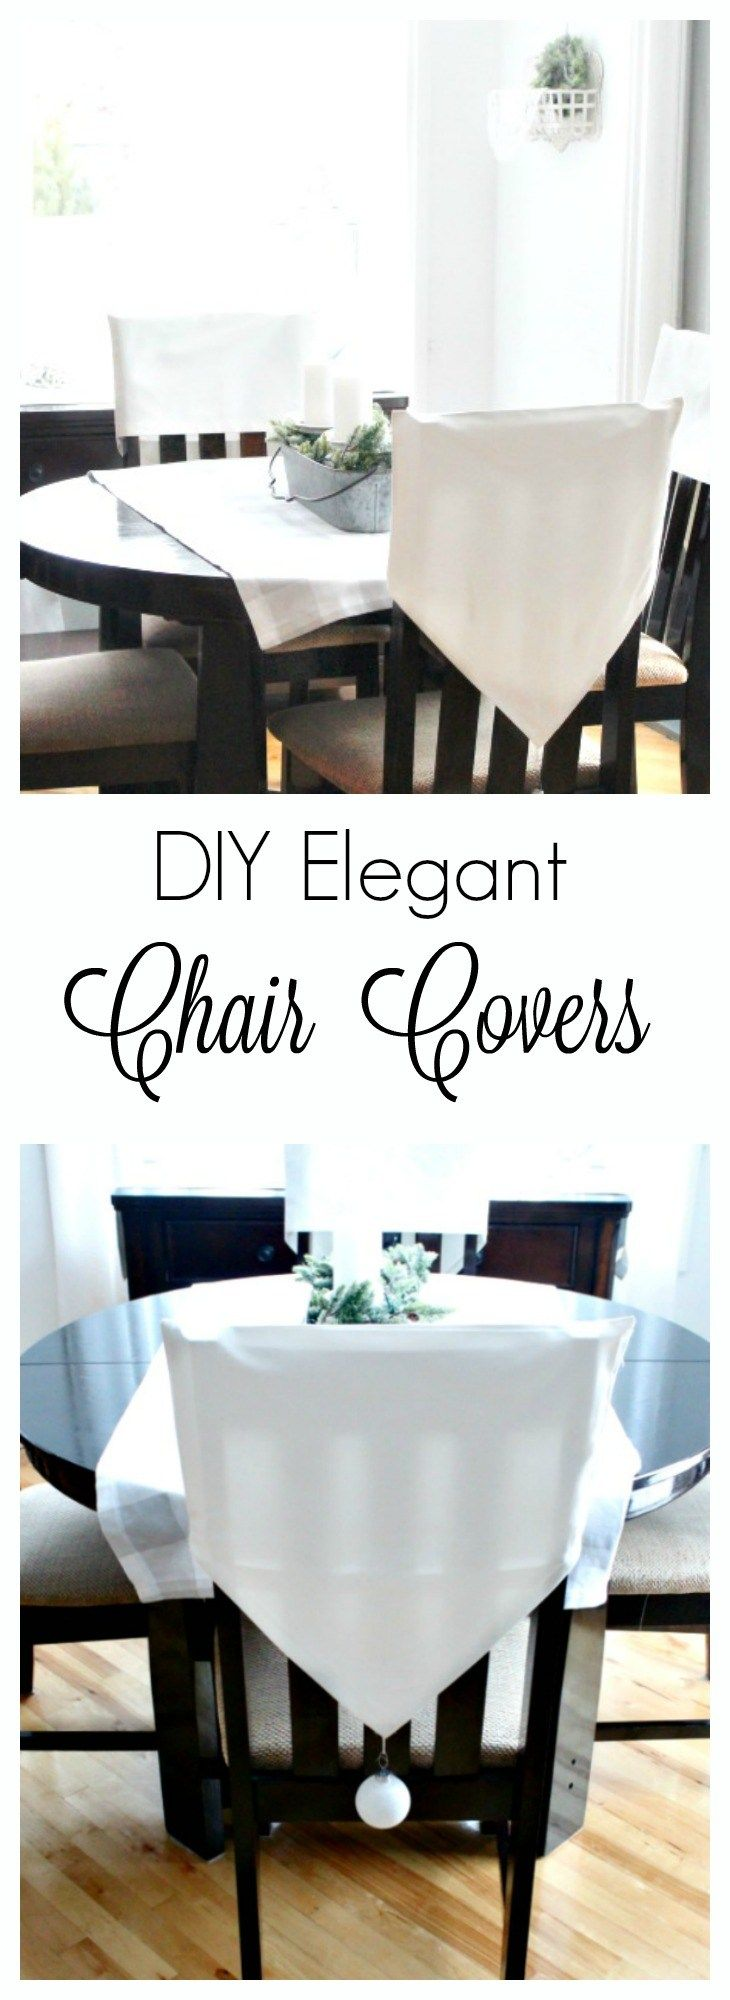 Diy Chair Back Covers Perfect For Dressing Up Kitchen Chairs Chair Back Covers Christmas Chair Covers Diy Chair Covers